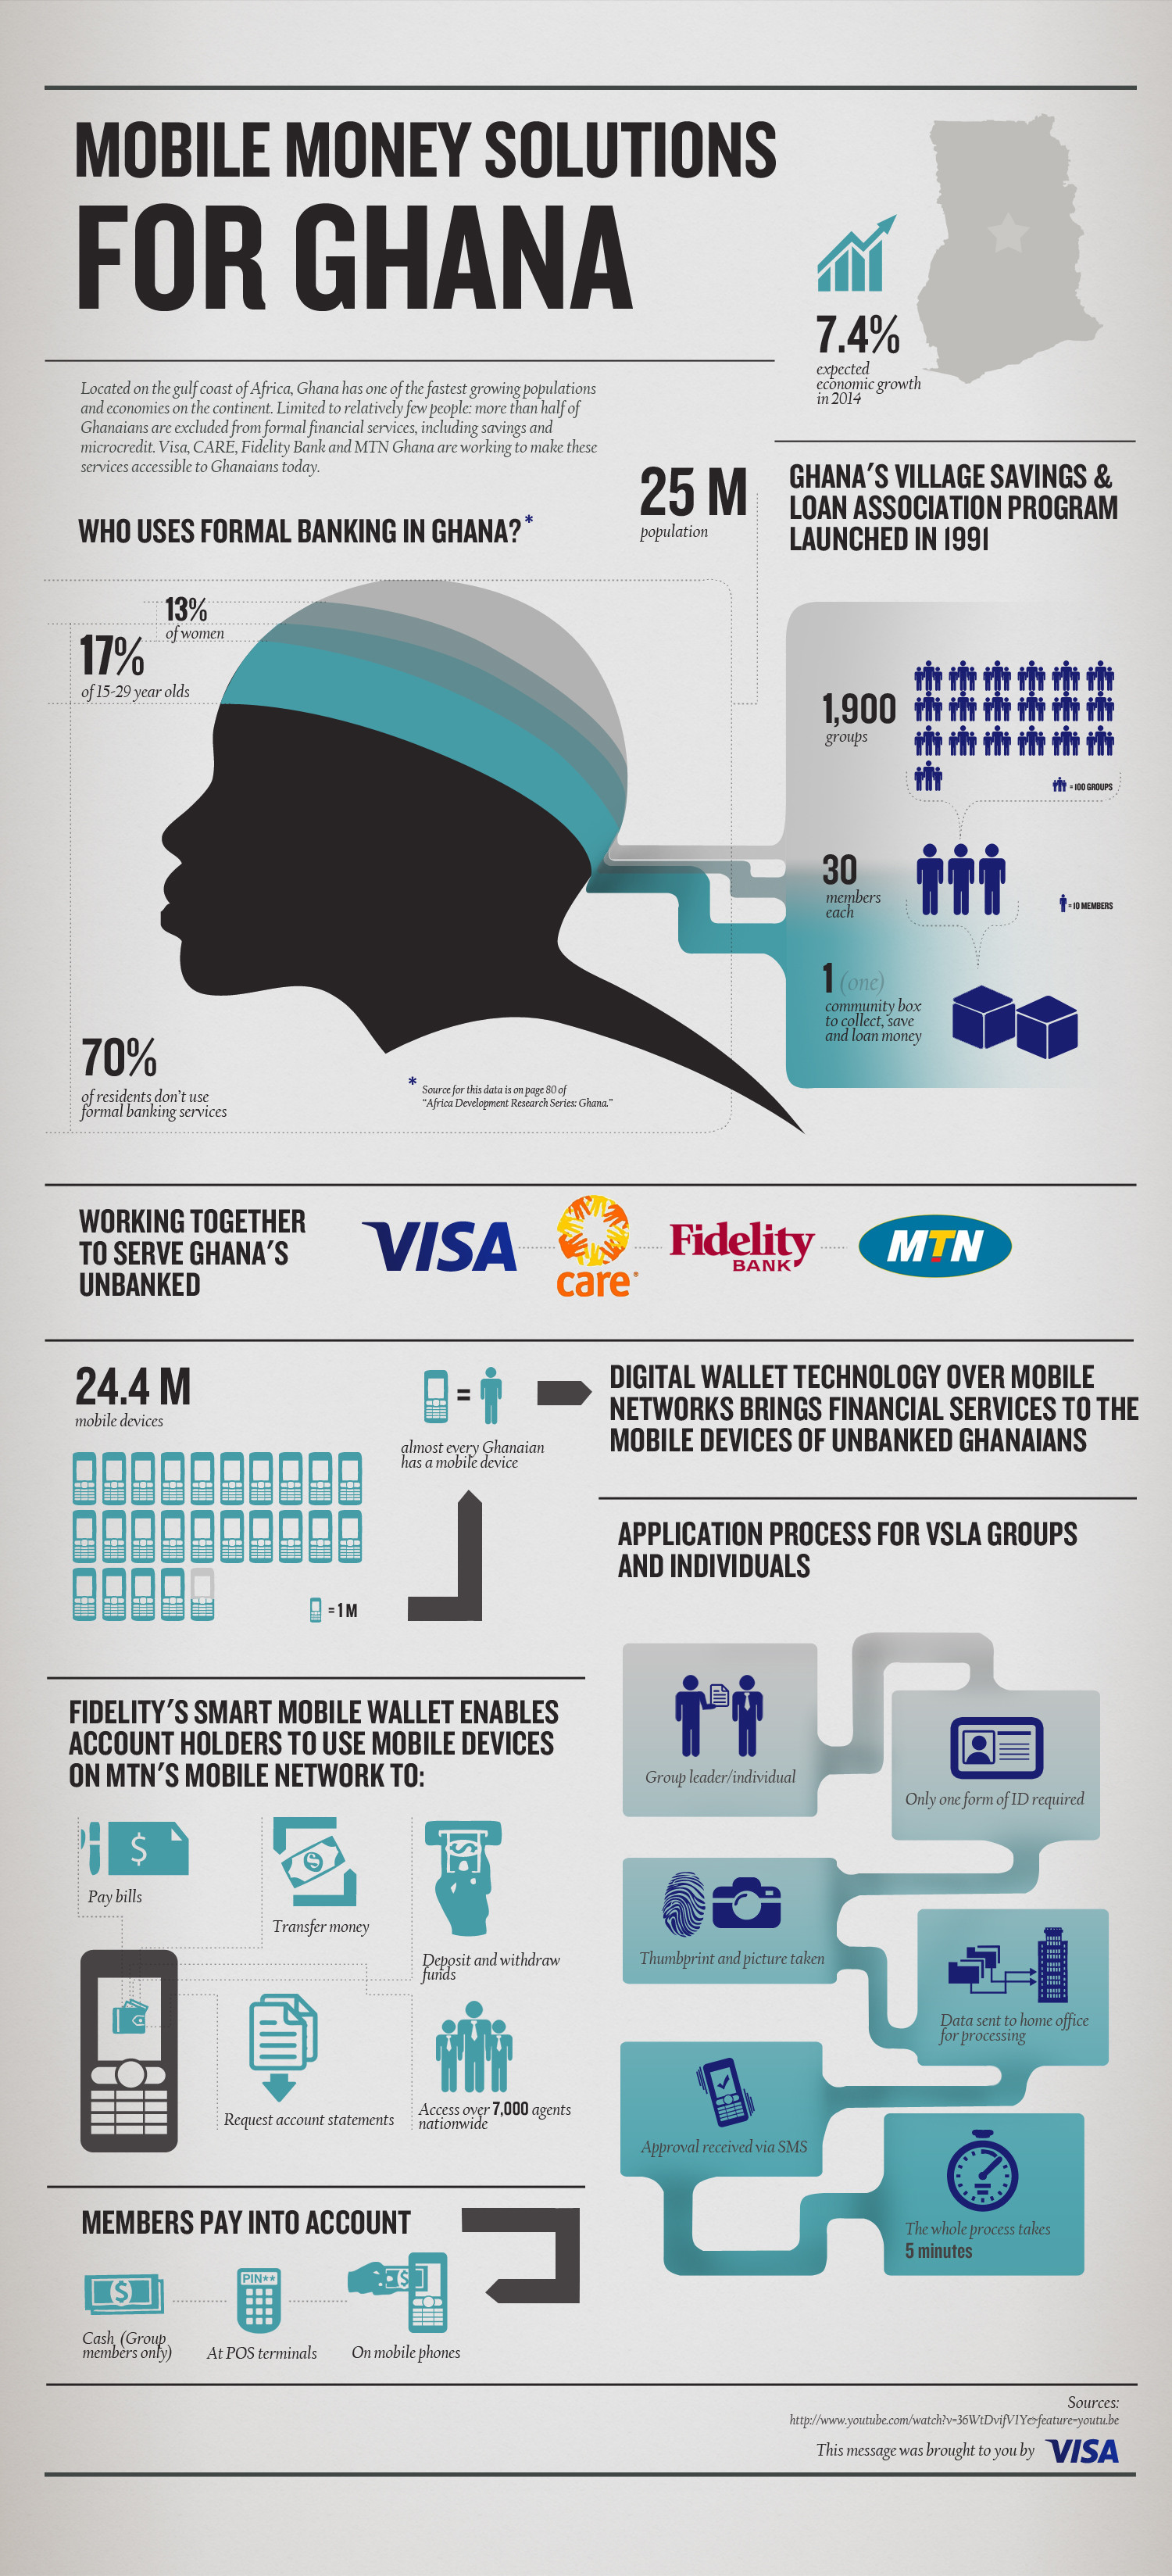 Mobile Money Solutions for Ghana Infographic